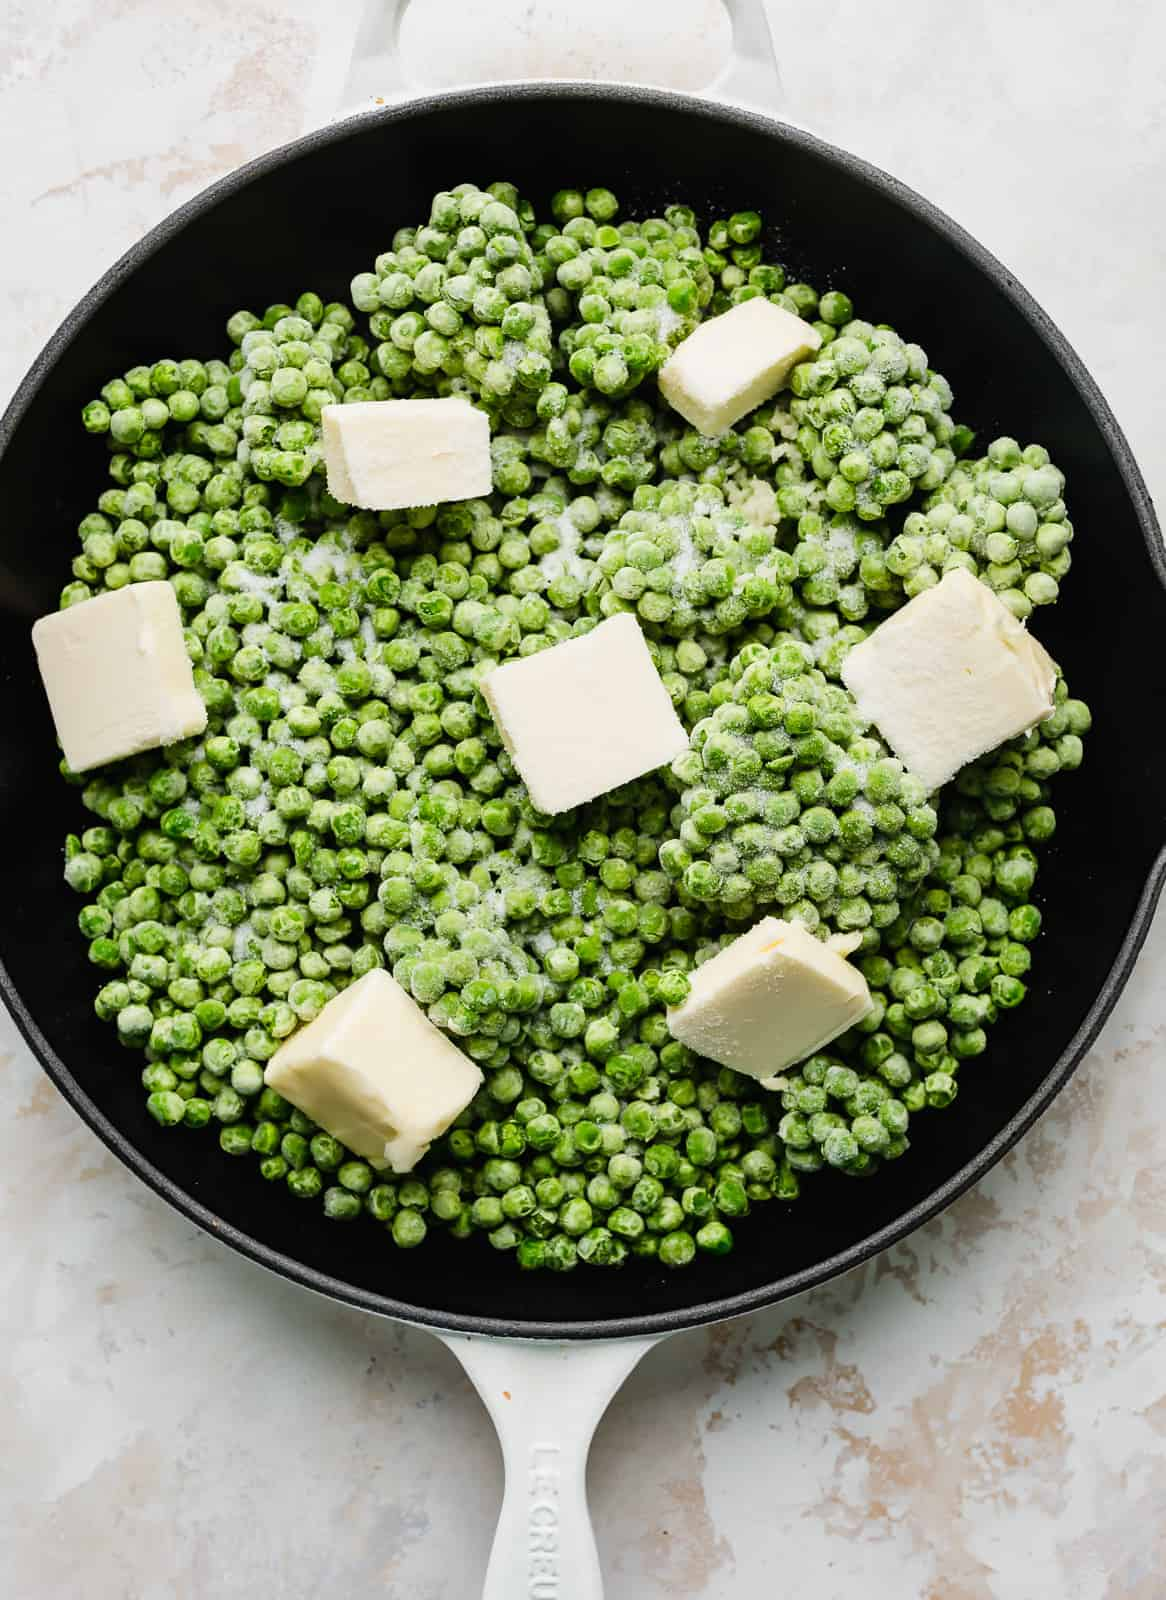 Frozen peas, cubed butter, sugar, and minced garlic in a skillet.